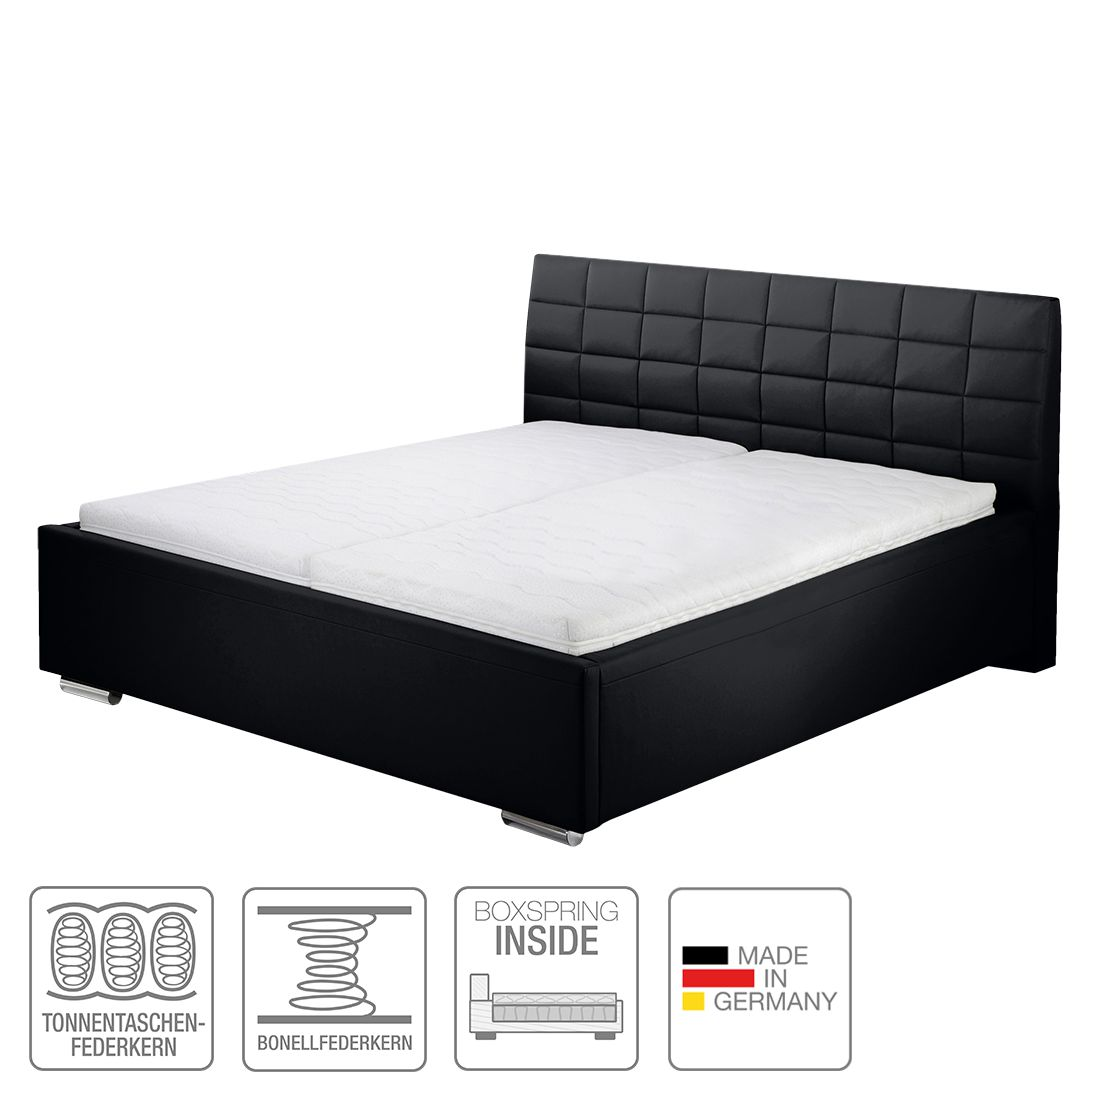 boxspring inside bett victoria kunstleder 160 x 200cm h3 ab 80 kg. Black Bedroom Furniture Sets. Home Design Ideas